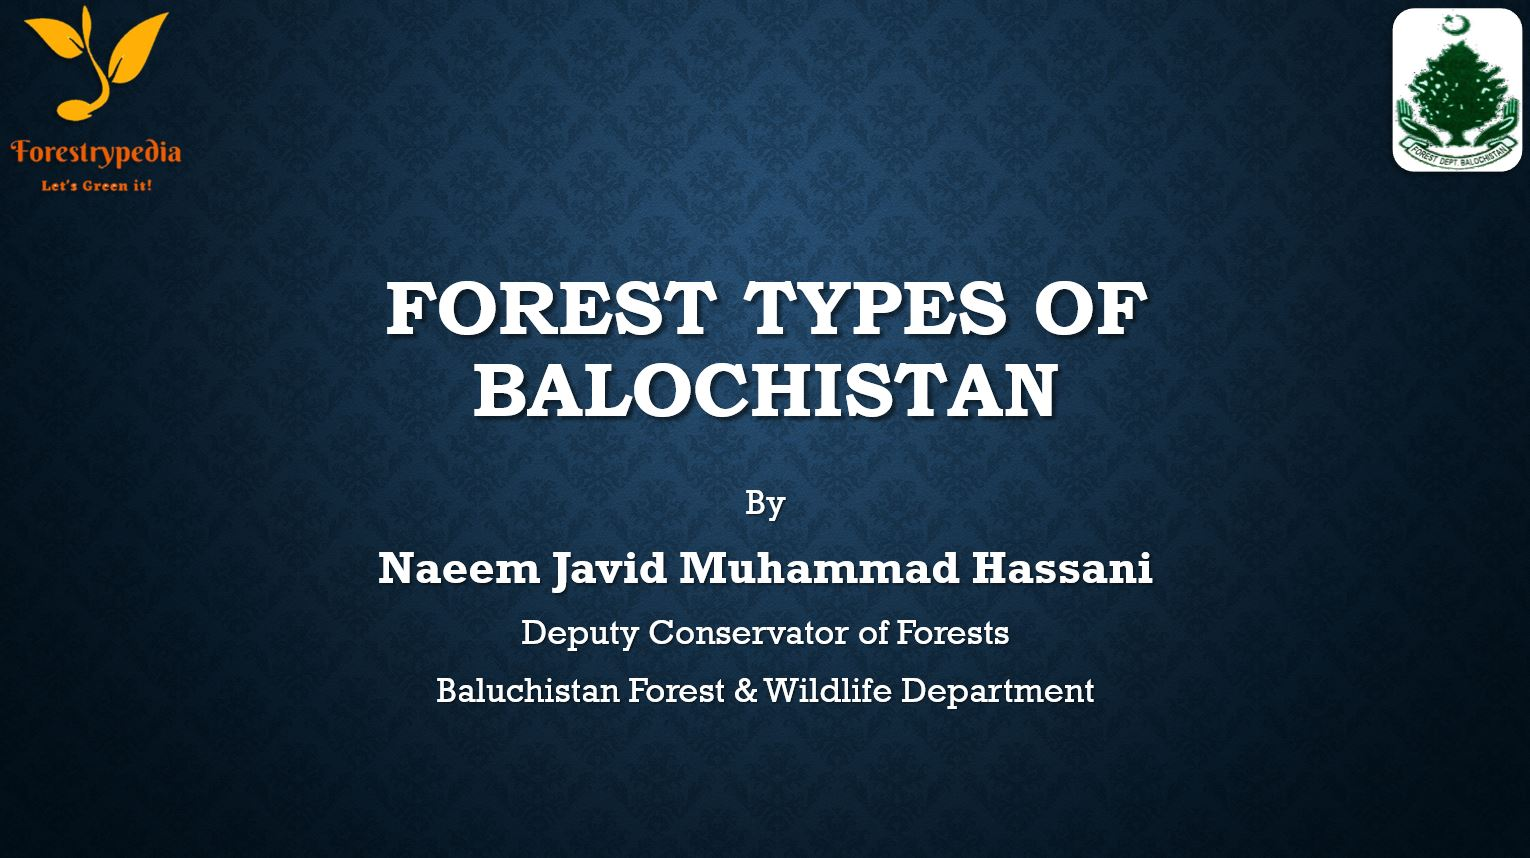 Forest Types of Balochistan (Powerpoint Presentation) - Forestrypedia